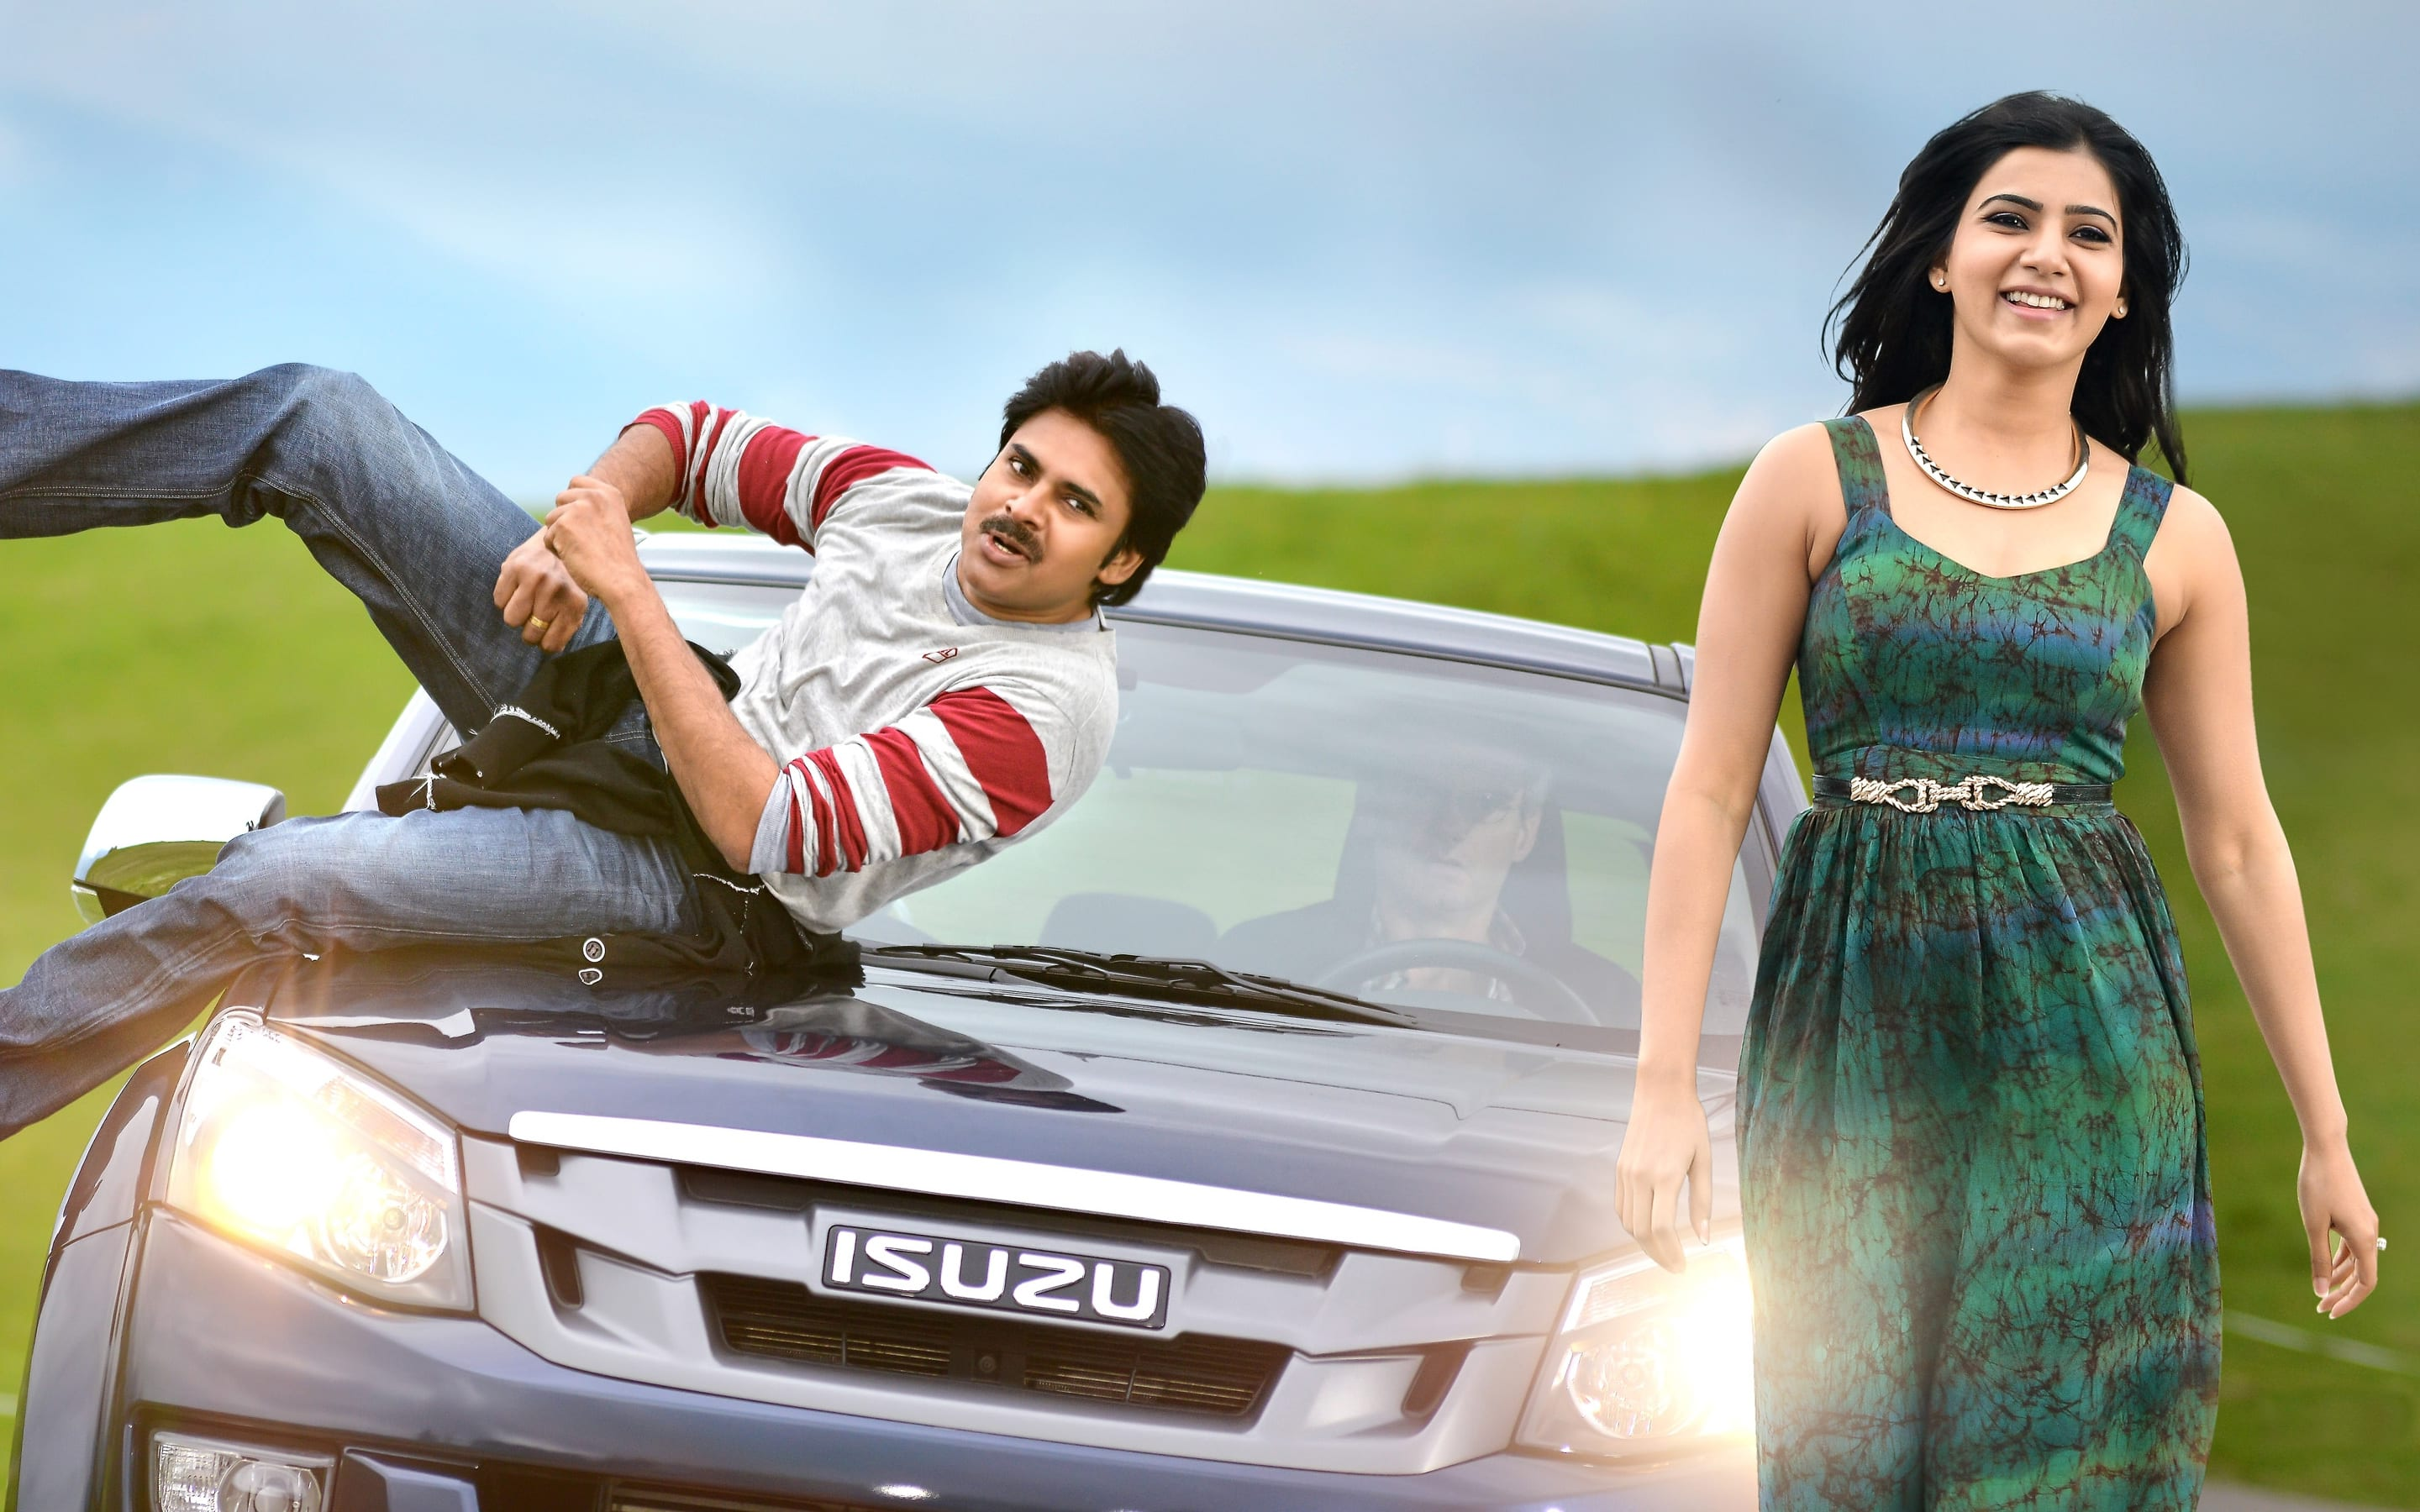 20 South Indian Movies That Grossed Over 100 Crores At The Box Office